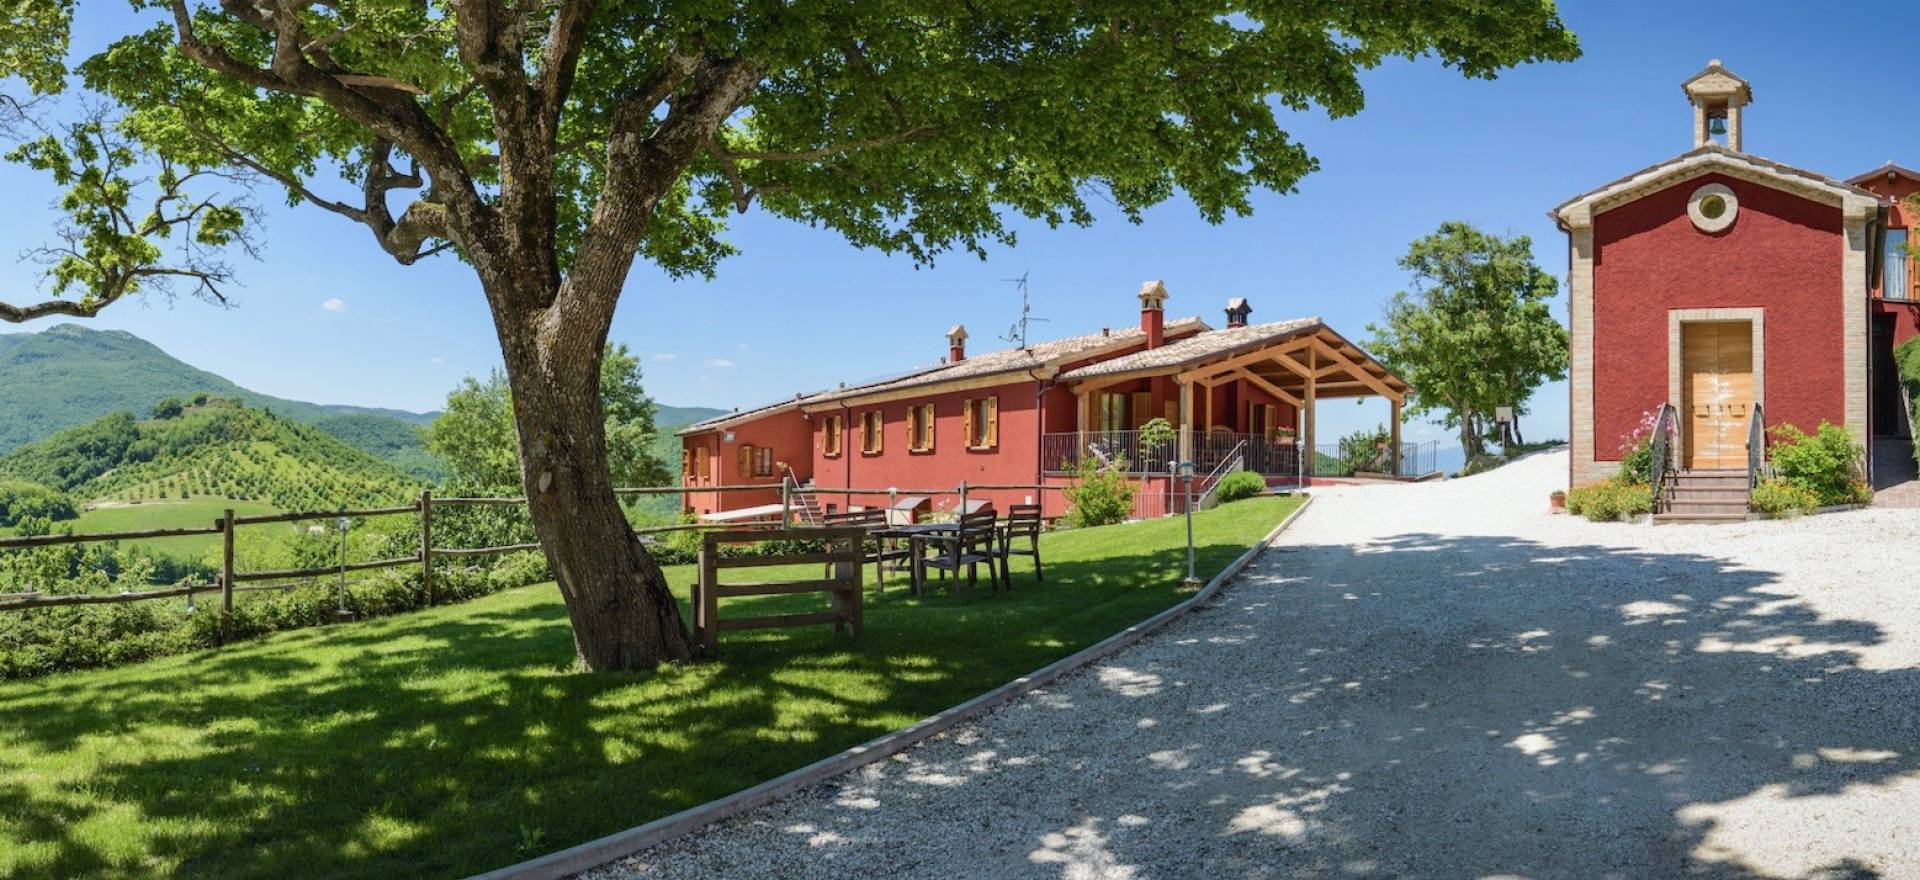 Agriturismo Marche Lovely agriturismo in Marche with welcoming hosts